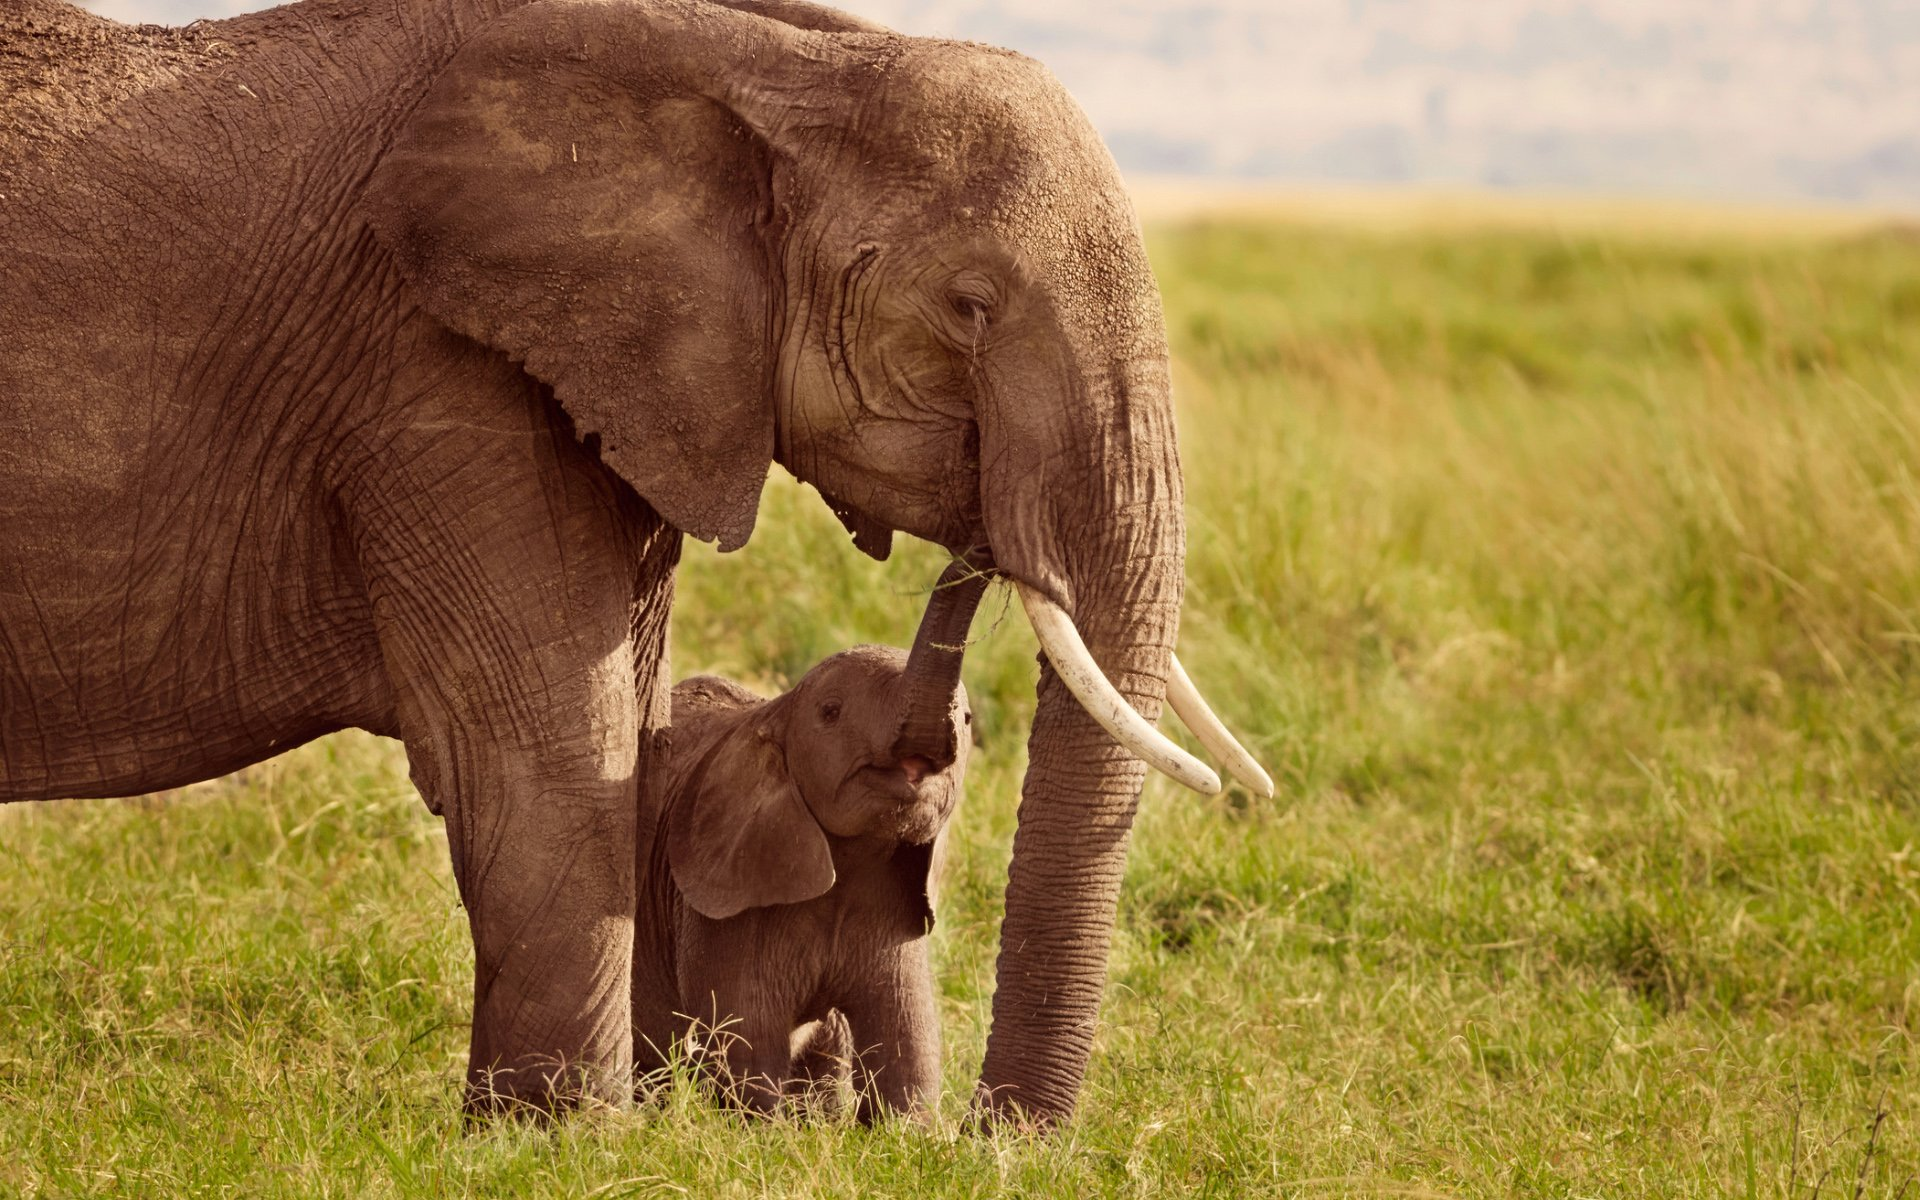 Moms and Baby Elephant Wallpaper